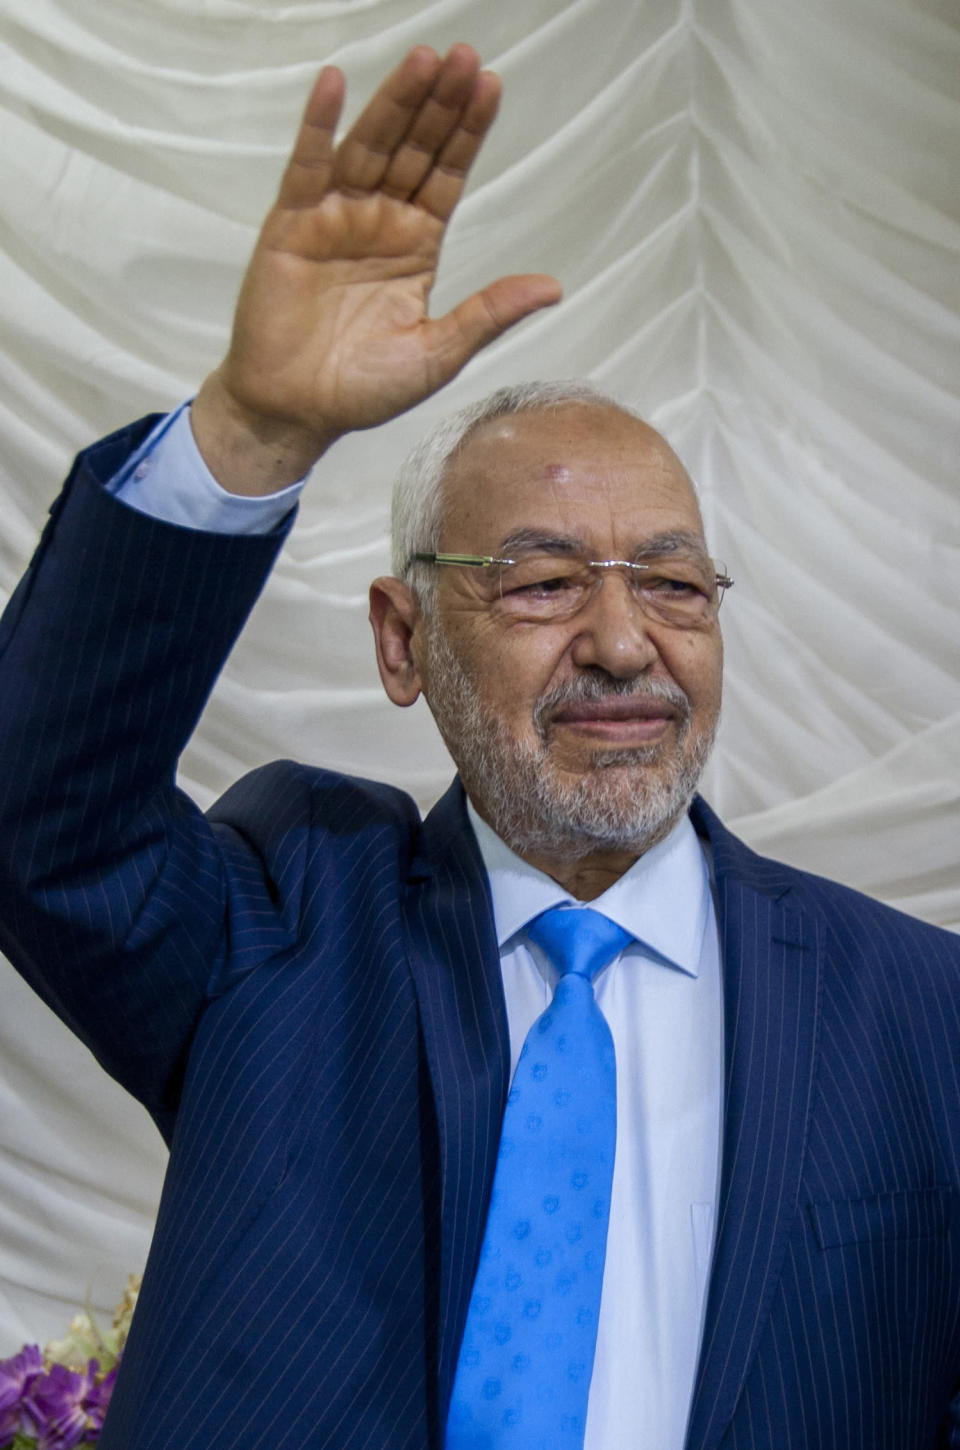 """File - In this April 16, 2018, photo, Tunisia's Islamist party leader and parliament speaker Rached Ghannouchi waves to supporters during a campaign rally in Tunis, Tunisia, Saturday, April 14, 2018. Rached Ghannouchi said on Tuesday that his party is working to form a """"national front"""" to counter President Kais Saied's decision to suspend the legislature, fire top government officials and take control of the fragile democracy amid the country's multi-layered crisis. (AP Photo/Hassene Dridi, File)"""